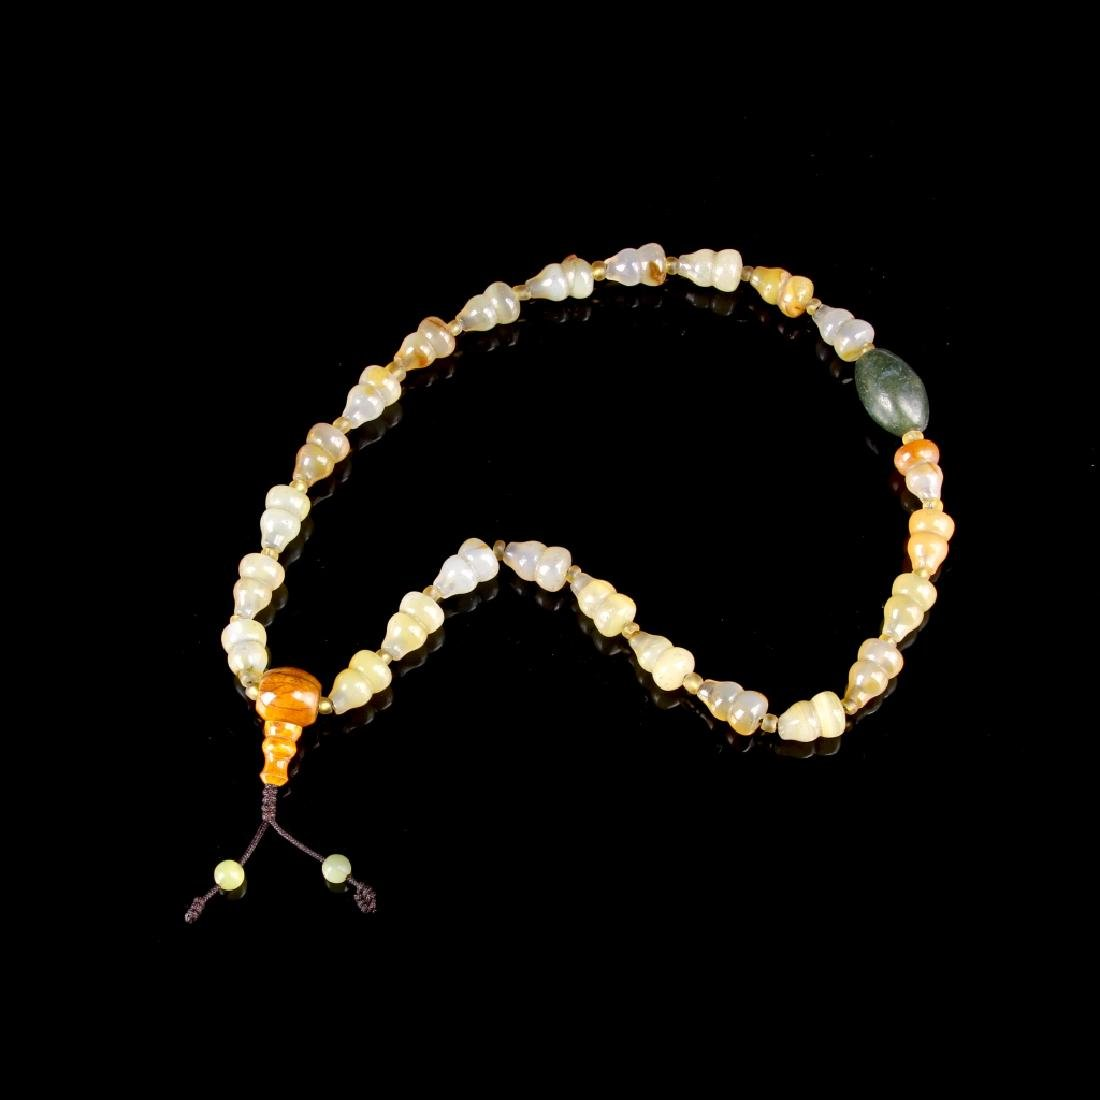 Chinese Agate Prayer Beads